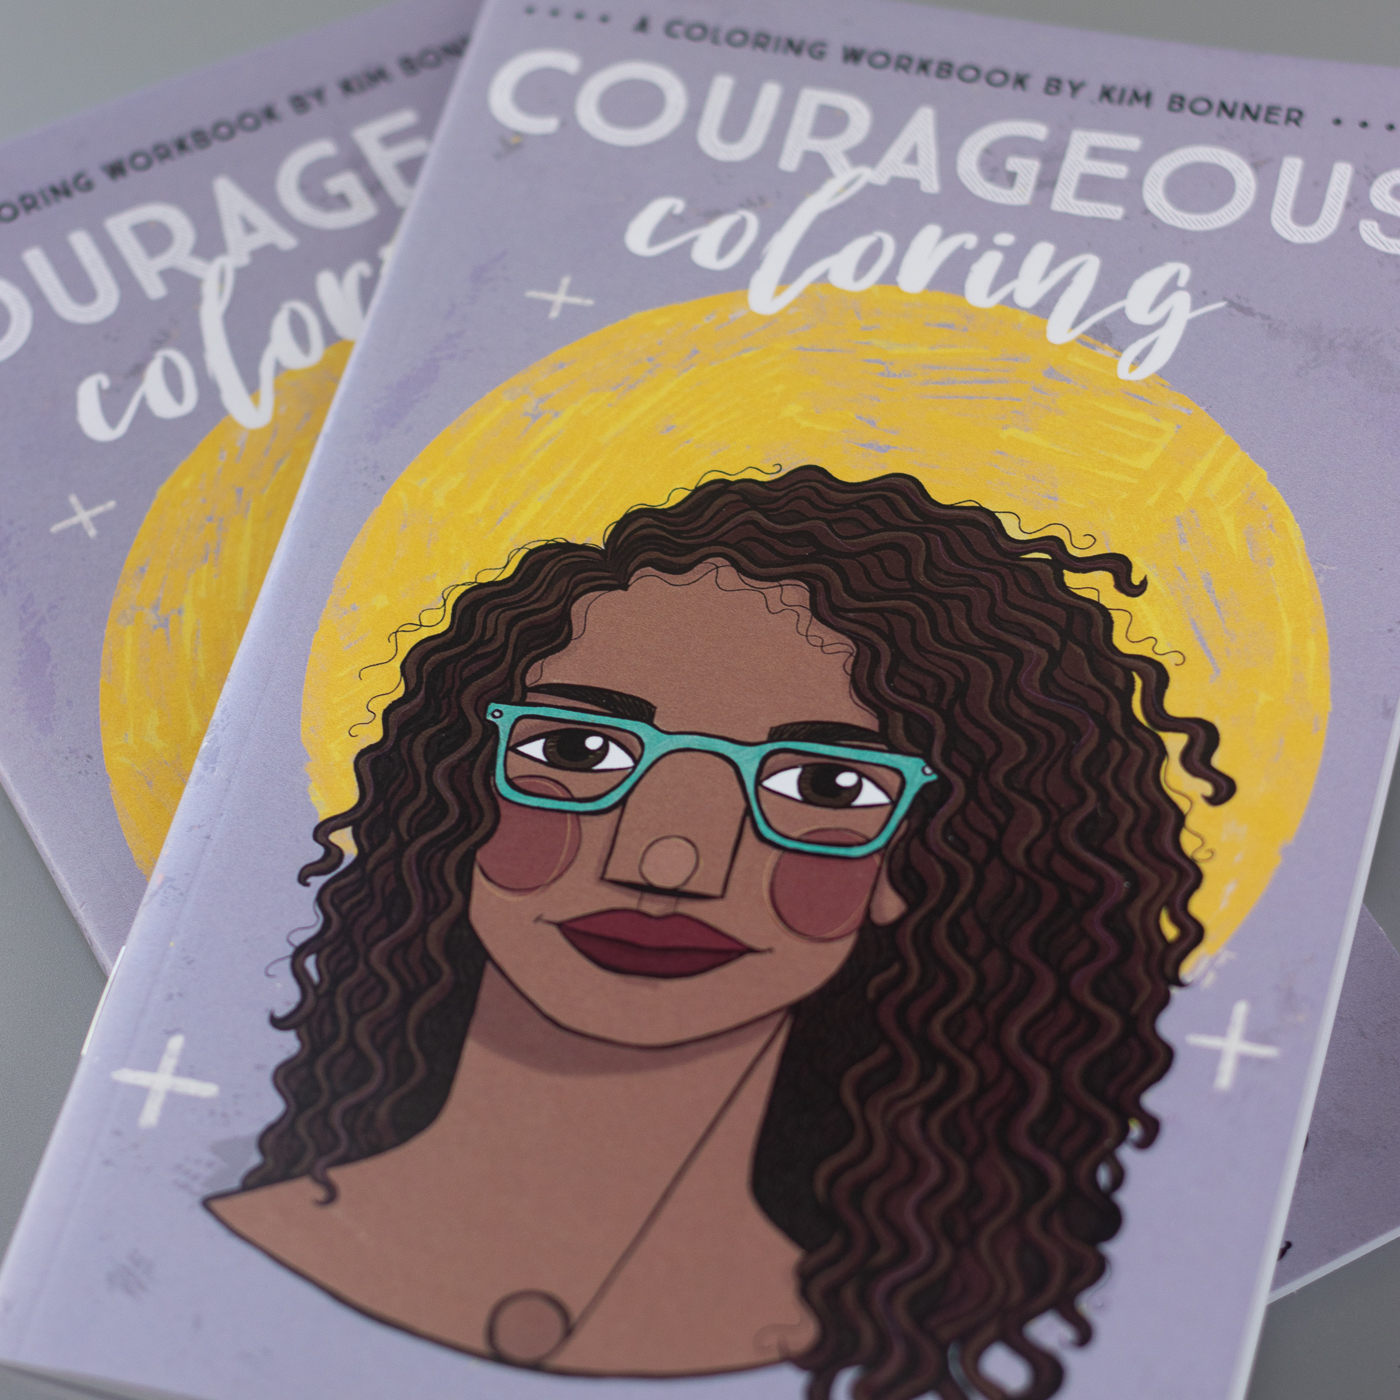 An interior page of the Courageous Coloring workbook by Kim Bonner from Fenton, Michigan.